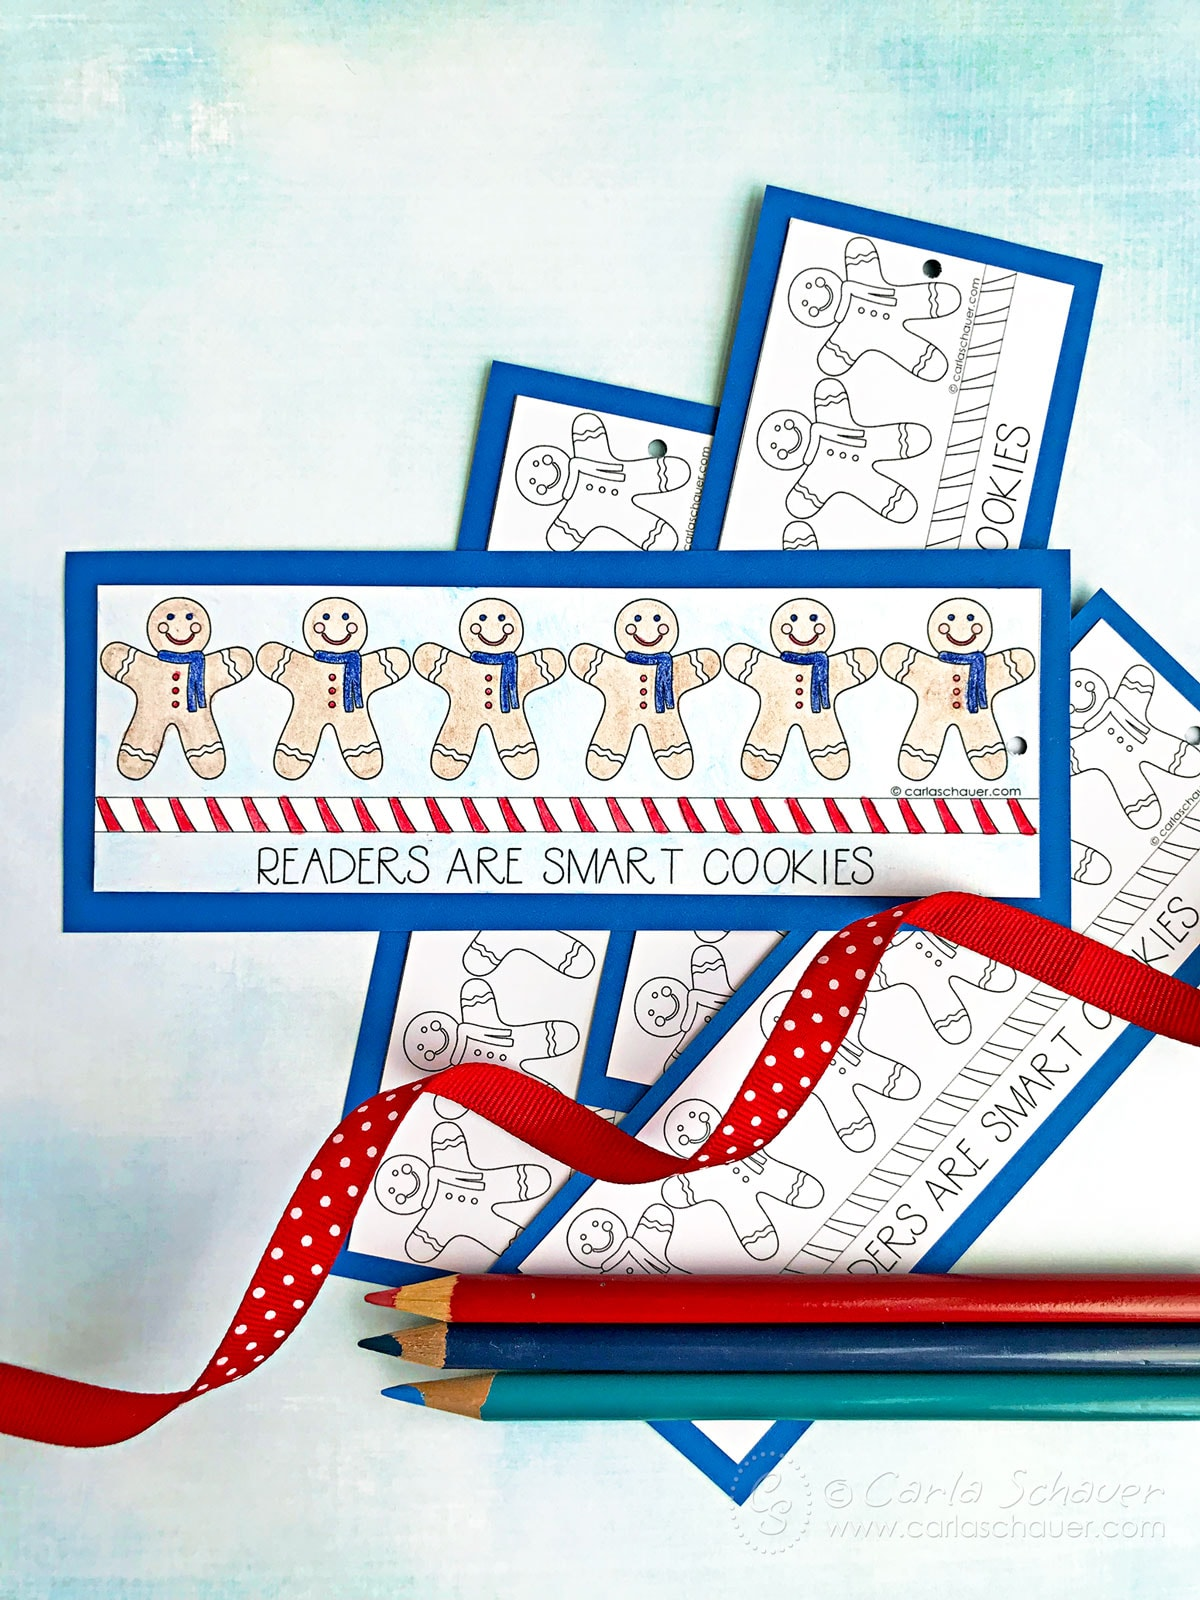 Gingerbread men colored bookmark in front of uncolored bookmarks and colored pencils.